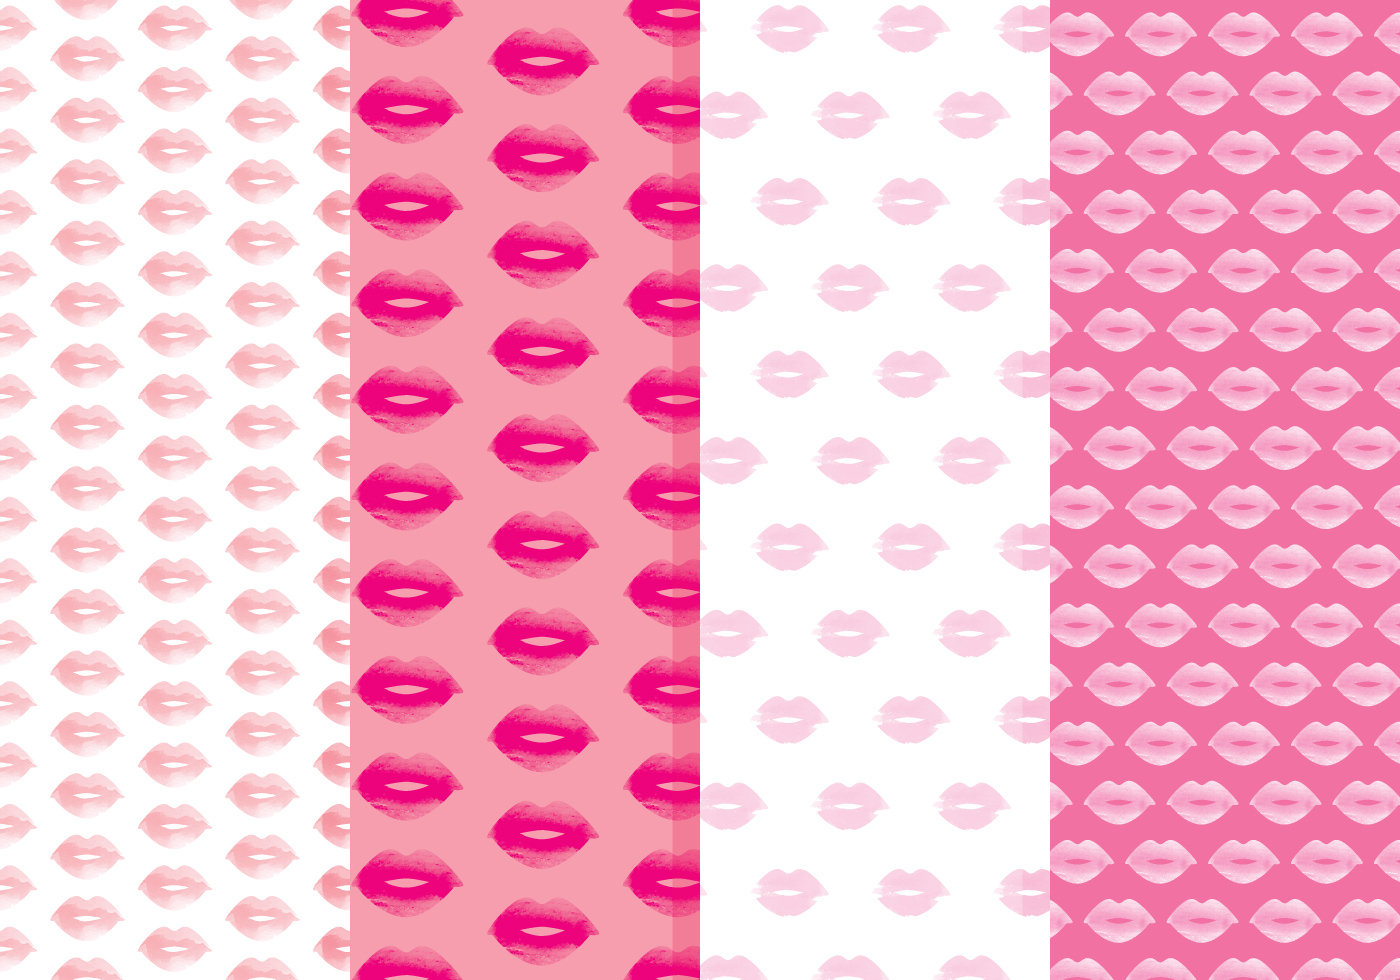 lips vector patterns download free vector art stock